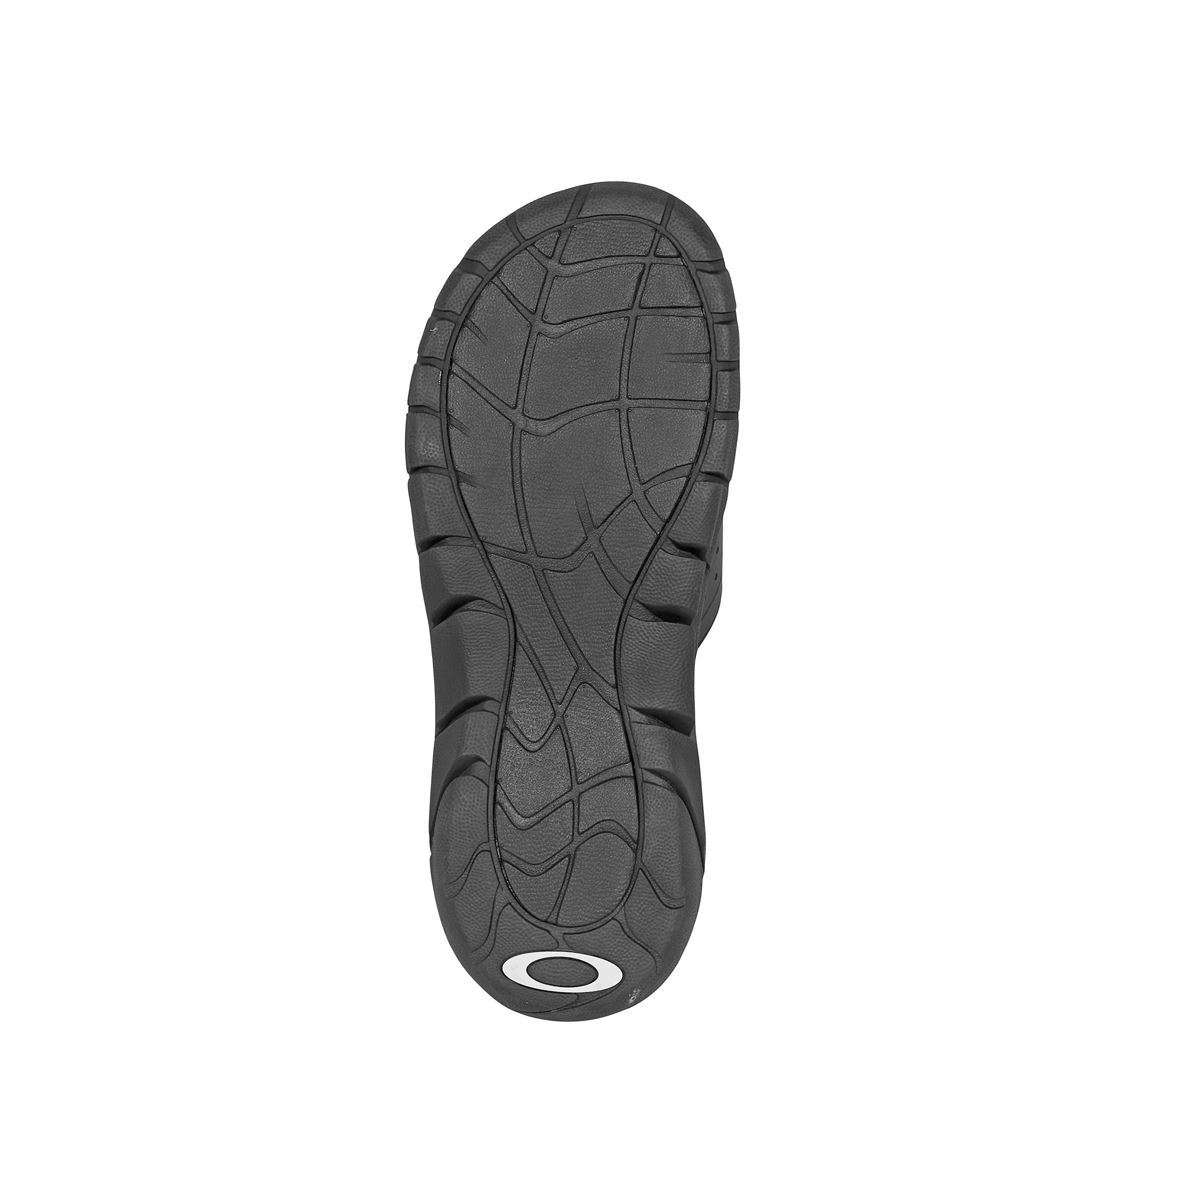 83e5e898c457 CLEARANCE - Oakley Supercoil Slide Sandals 2.5 - Blackout - Size 10.0 -  OPEN BOX -